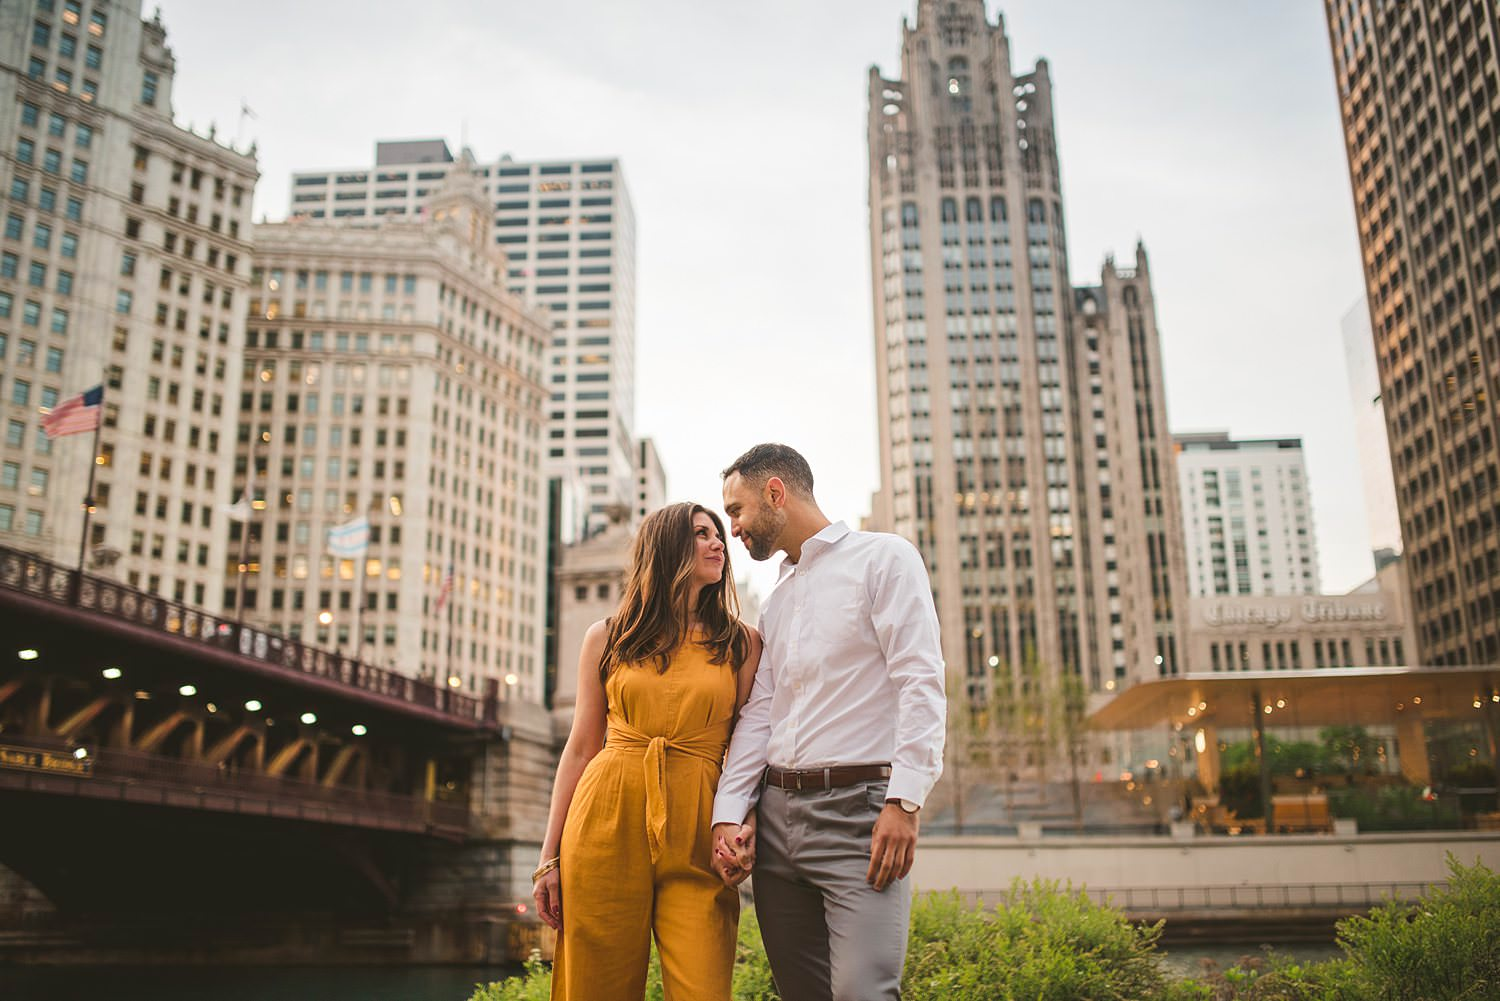 Downtown Chicago Engagement Photos - Museum of Science and Industry Session - Elizabeth and Dan -50.jpg